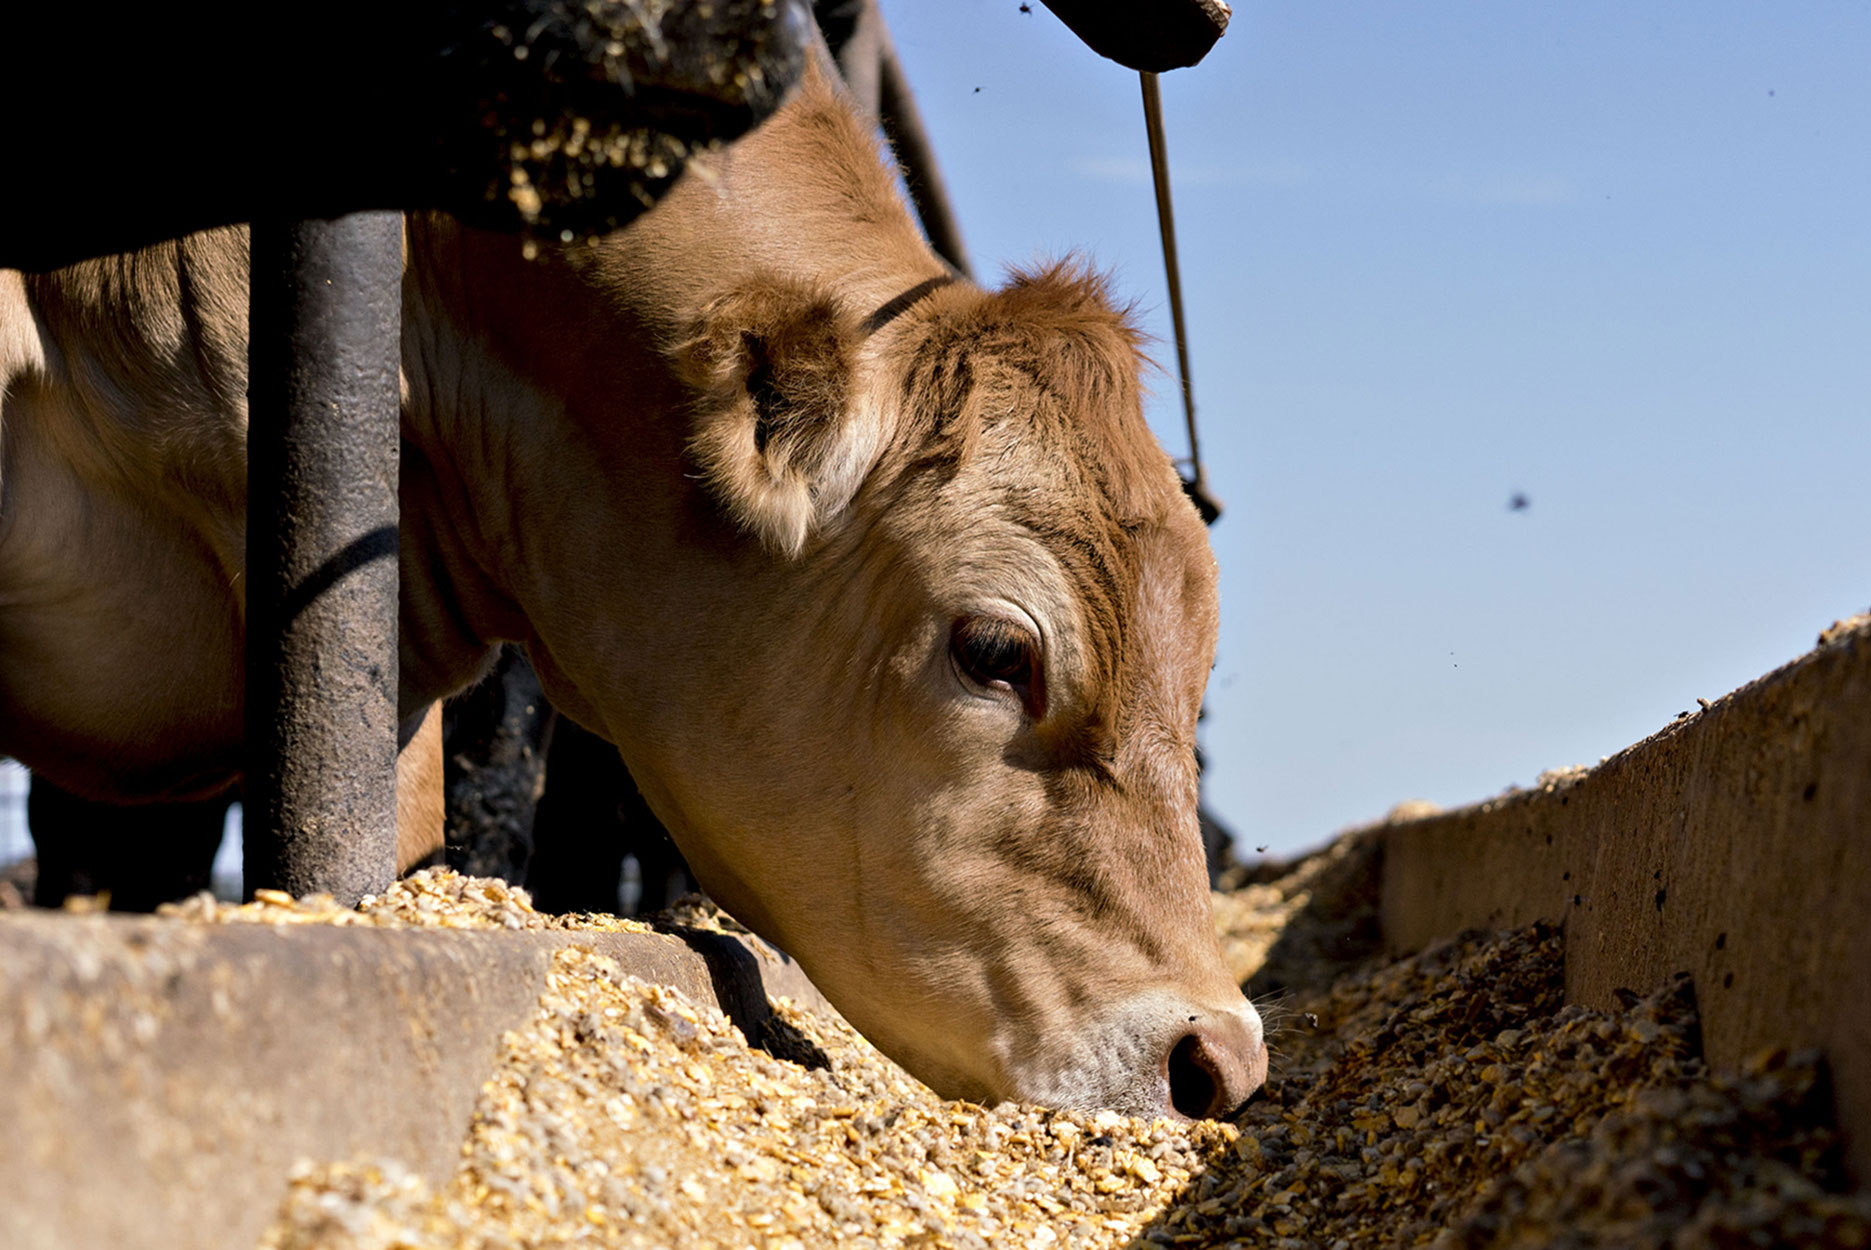 A cow eating grain from a trough